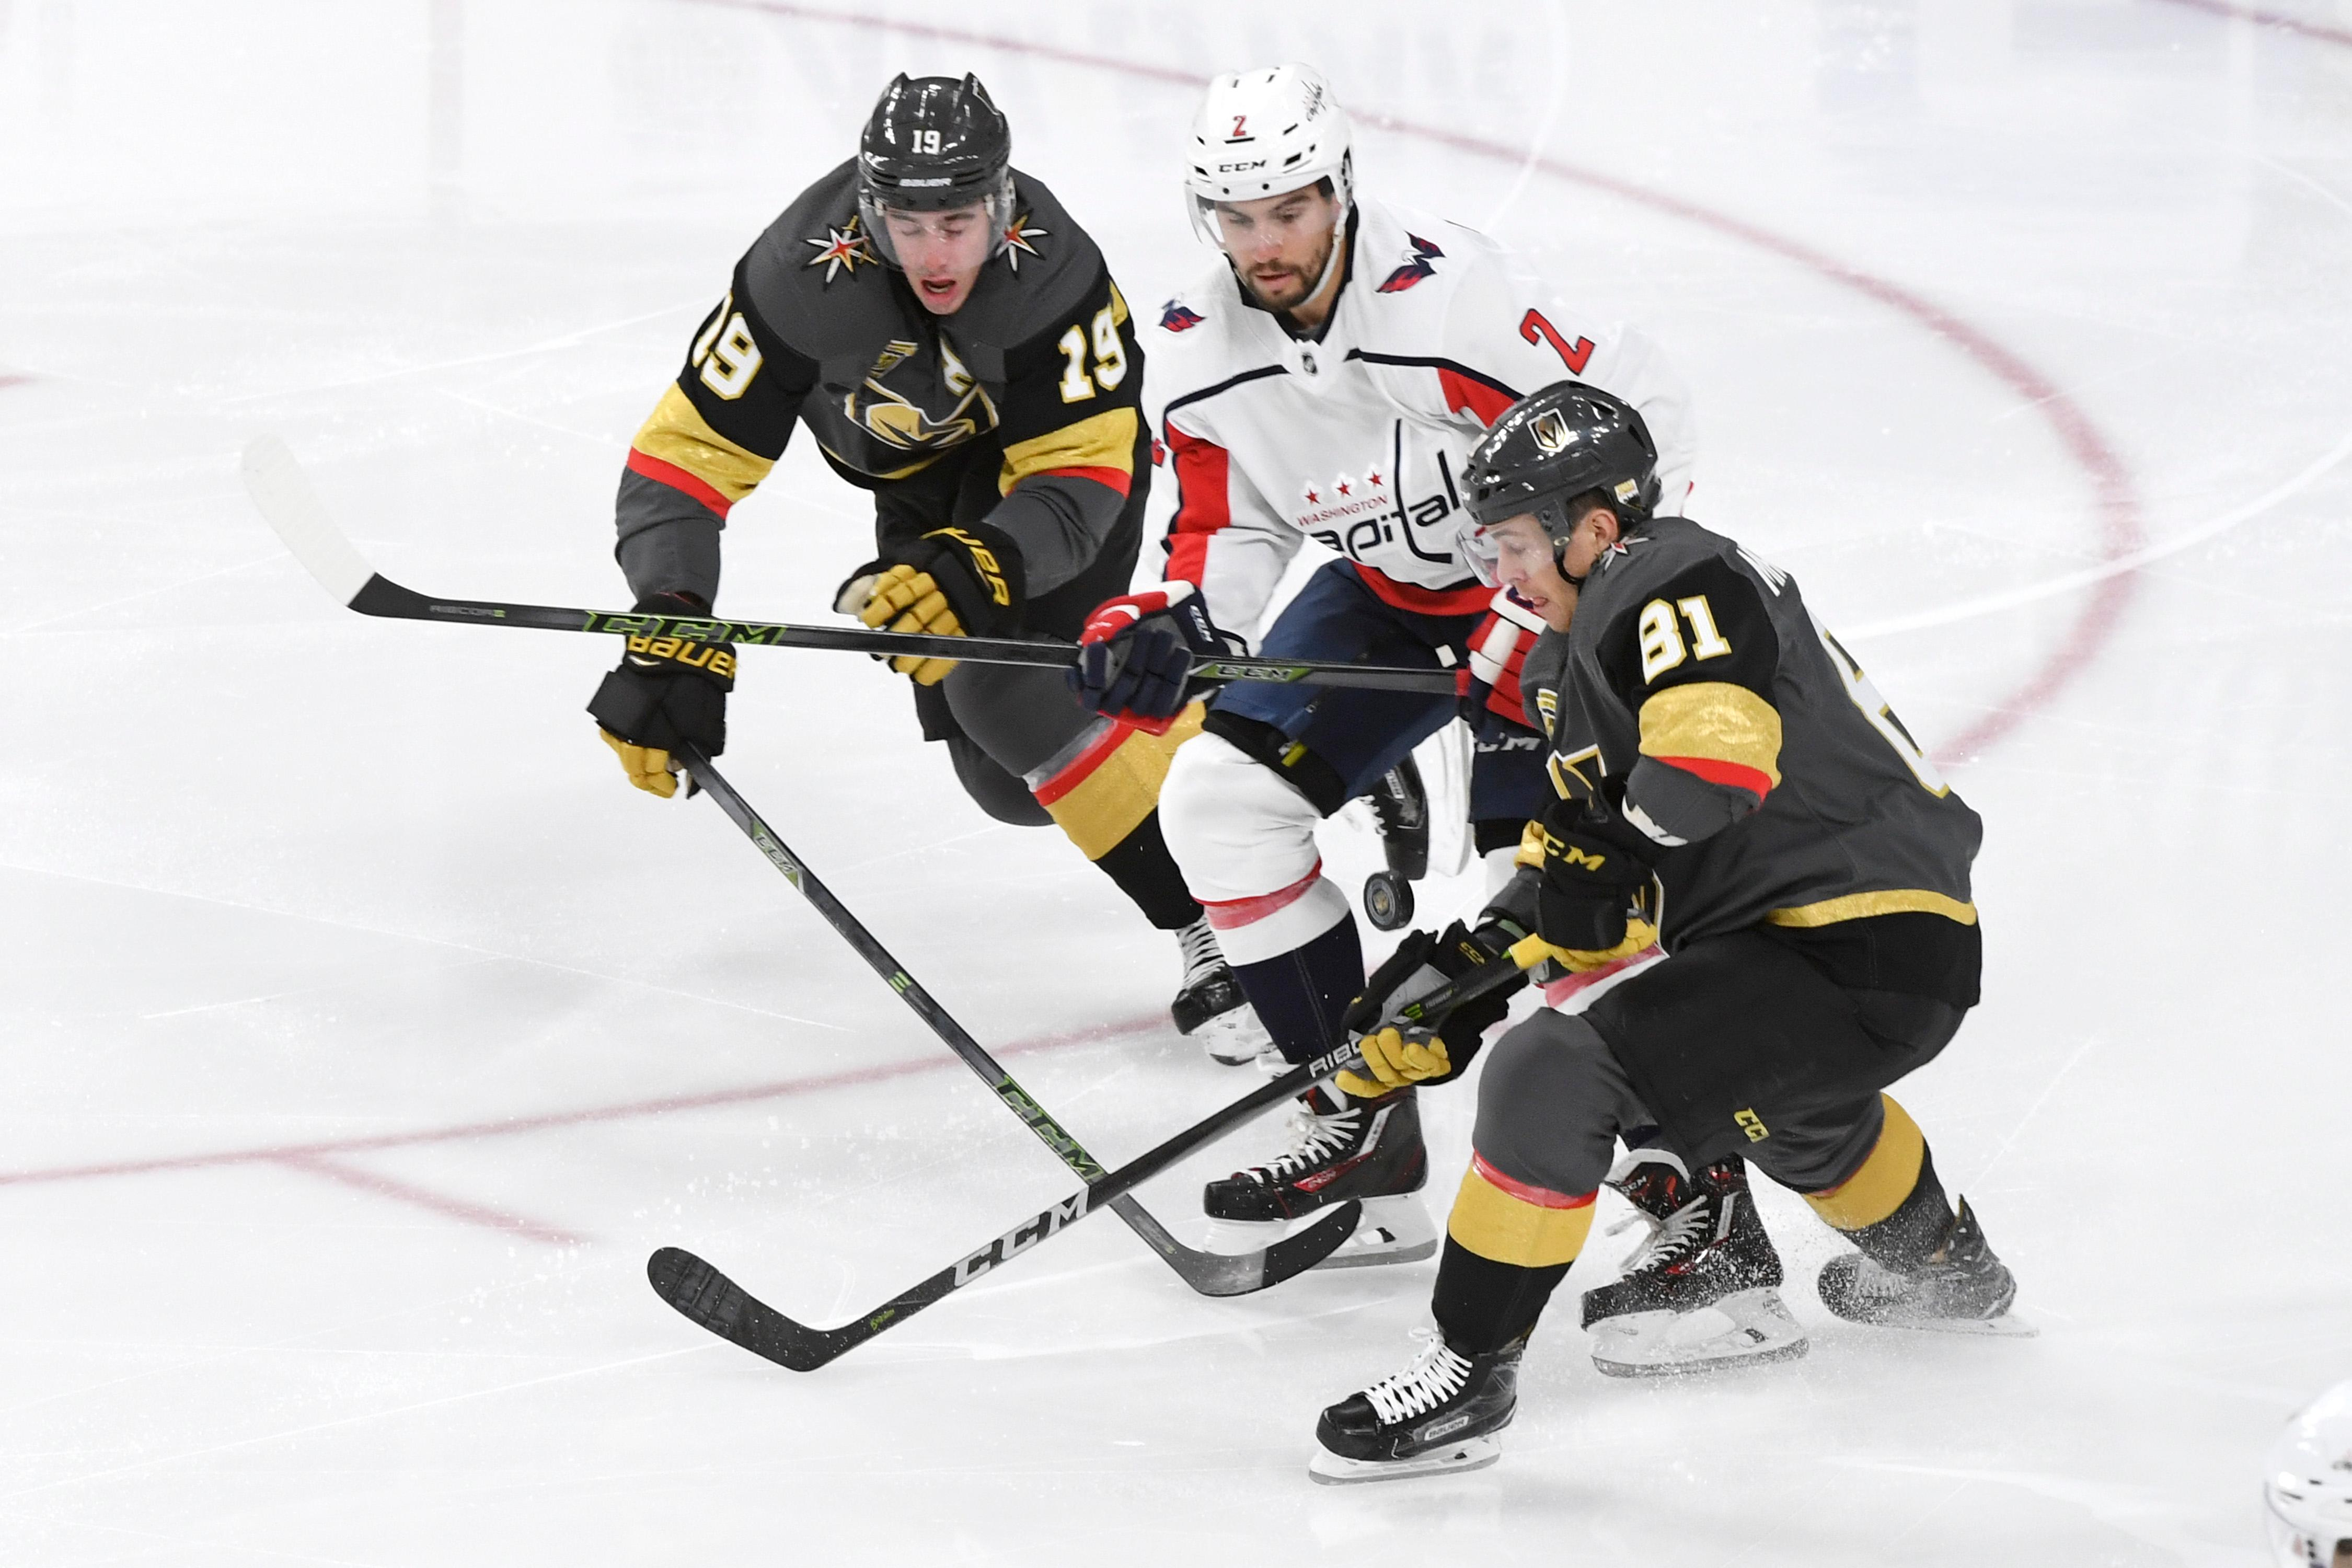 Vegas Golden Knights right wing Reilly Smith (19) and Vegas Golden Knights center Jonathan Marchessault (81) are challenged for the puck by Washington Capitals defenseman Matt Niskanen (2) during their NHL hockey game Saturday, December 23, 2017, at T-Mobile Arena in Las Vegas.  CREDIT: Sam Morris/Las Vegas News Bureau